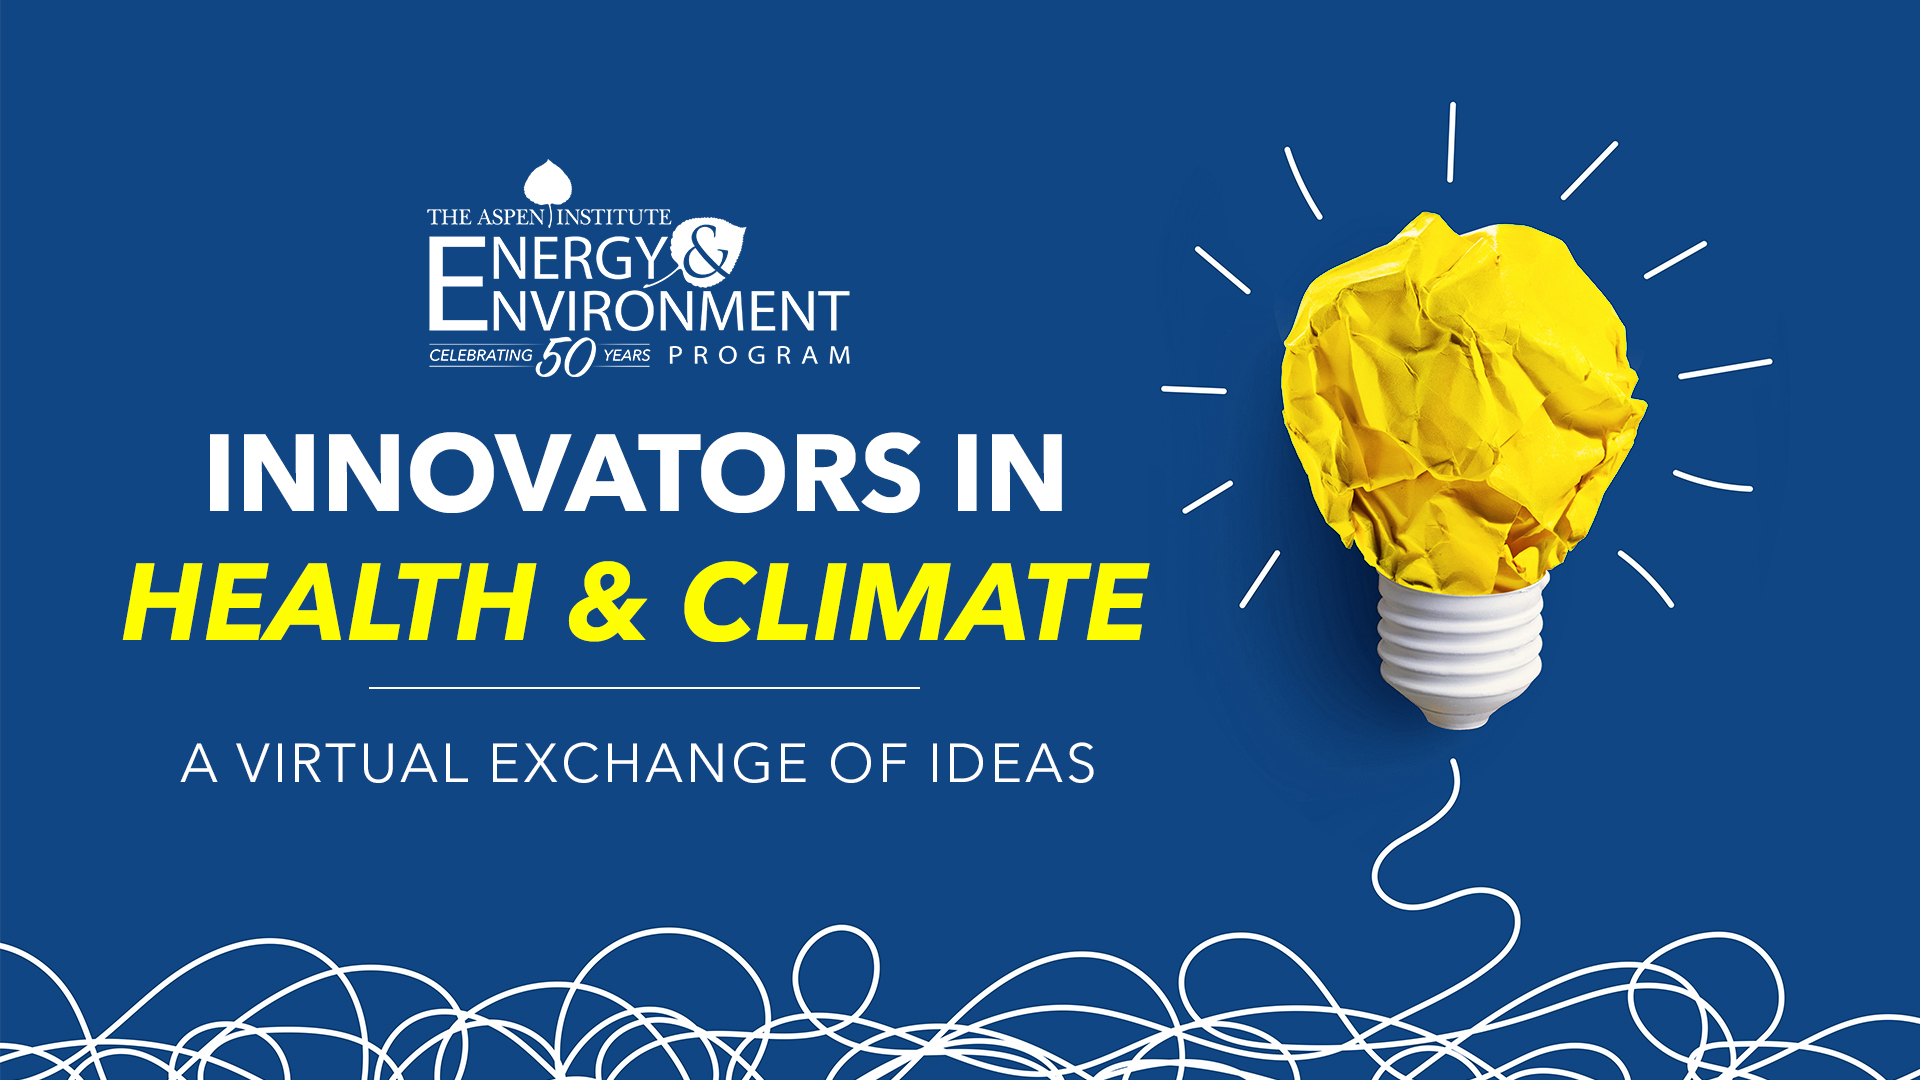 Innovators In Health & Climate: A Virtual Exchange of Ideas